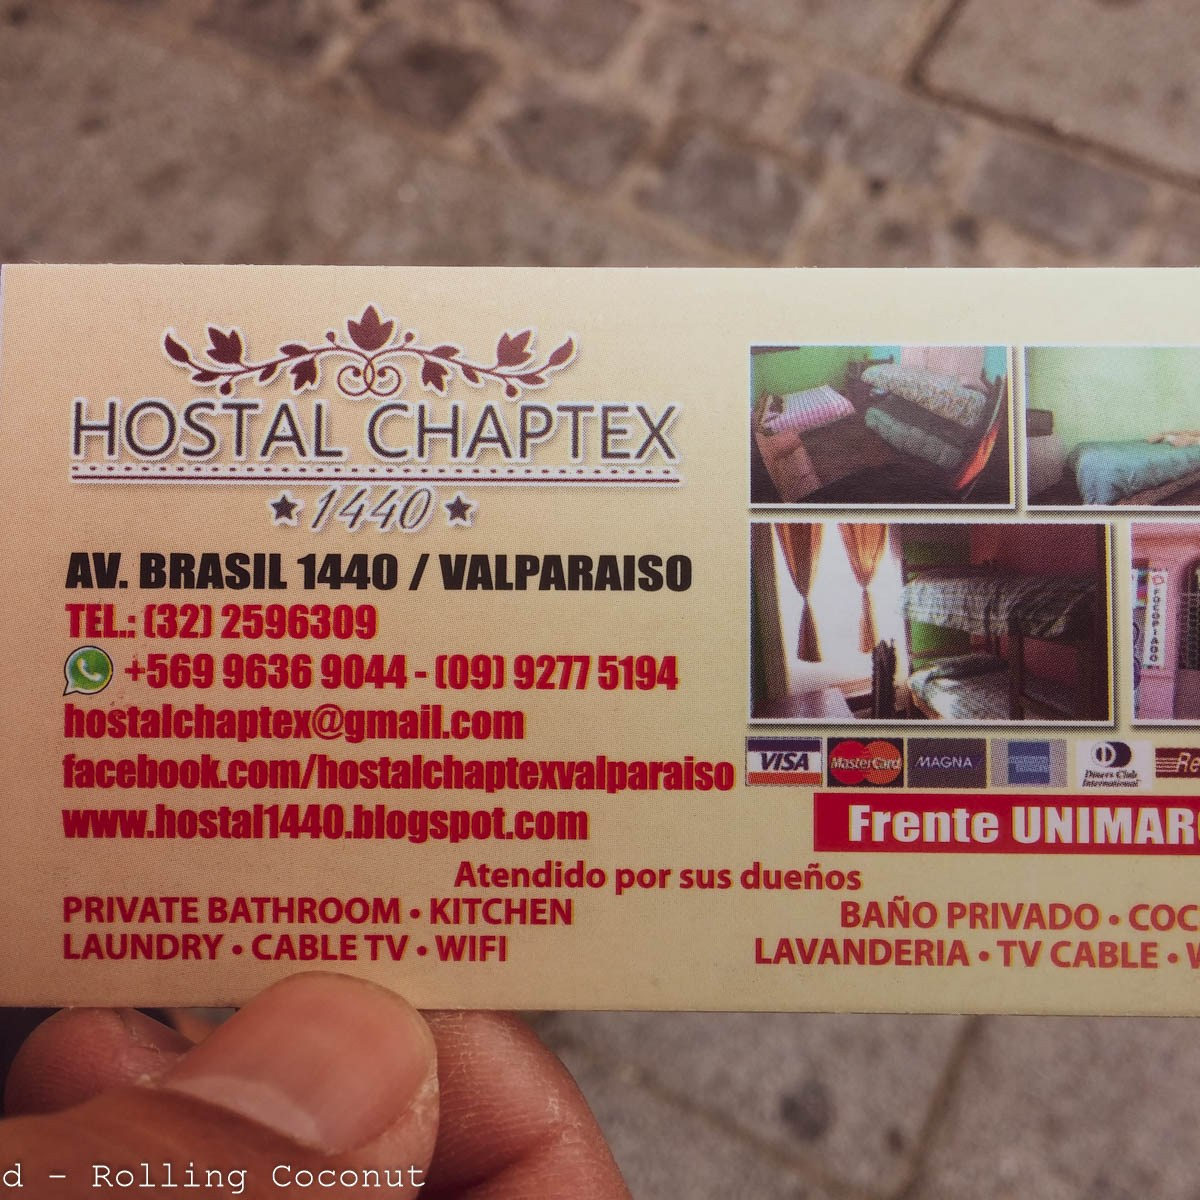 Hostal Chaptex Card Valparaiso Chile Photo Rolling Coconut Ooaworld